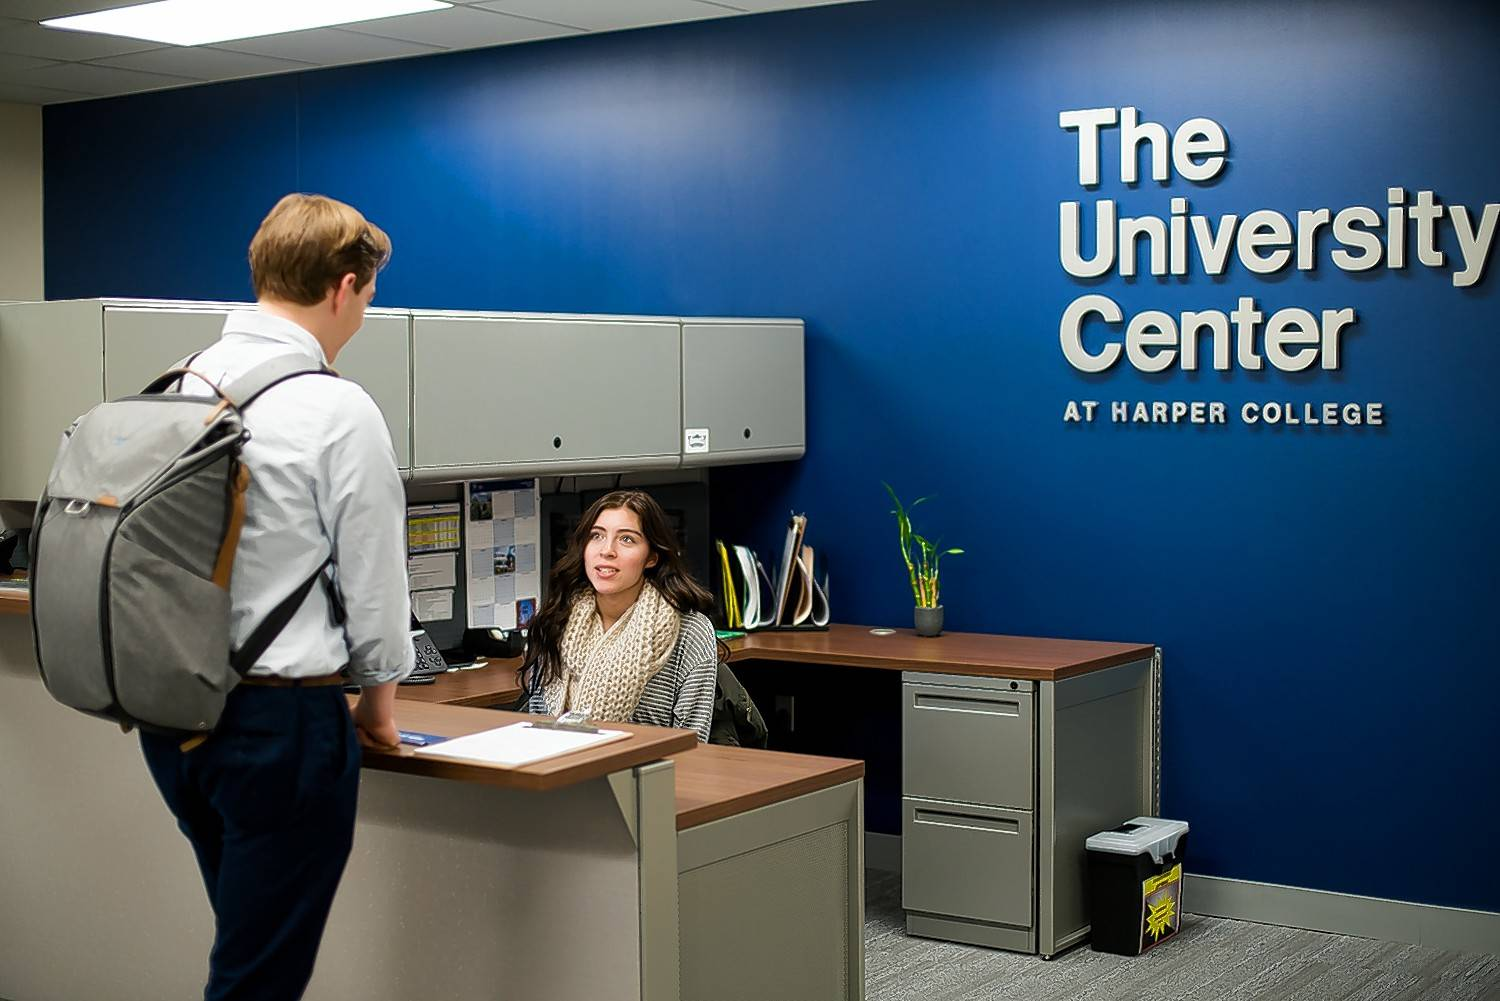 Harper College plans to officially dedicate its University Center Wednesday as part of new academic partnerships it has established with DePaul, Roosevelt and Northern Illinois universities.